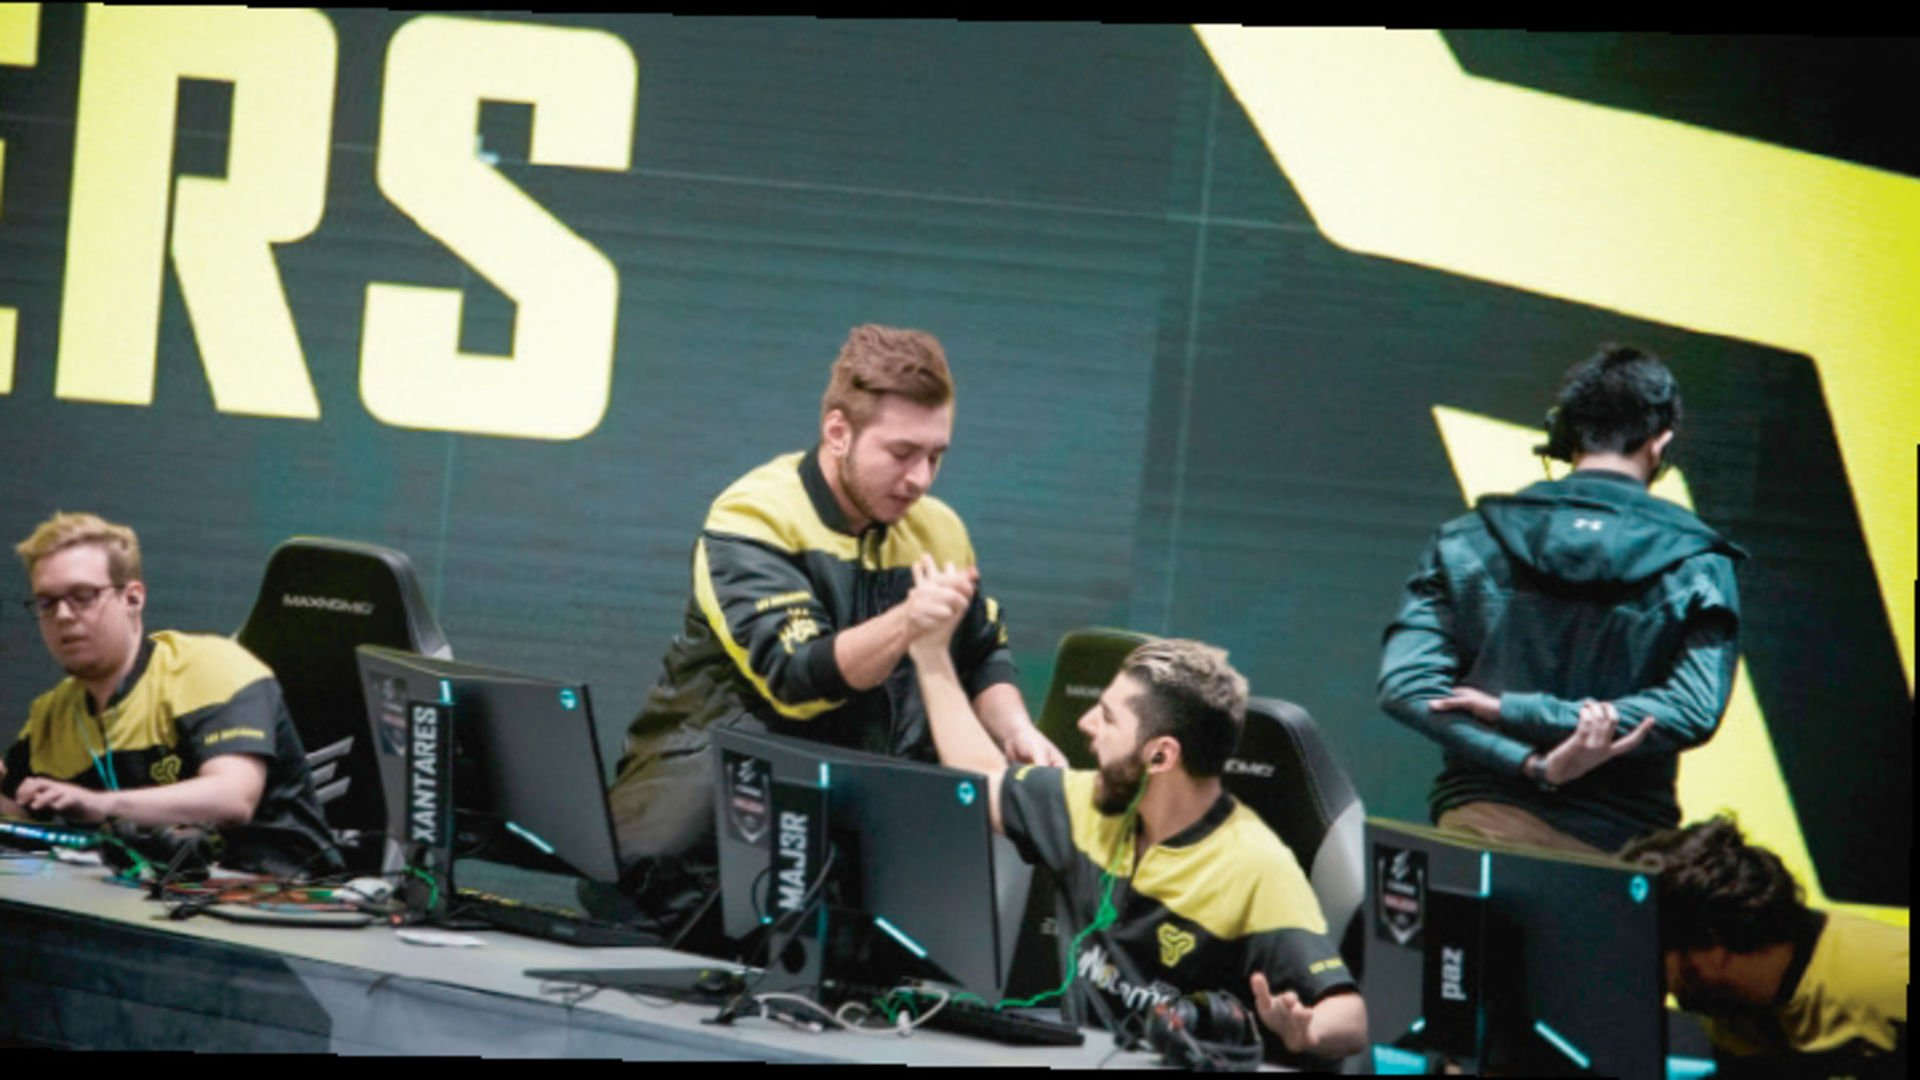 Xantares and co. part ways with Space Soldiers